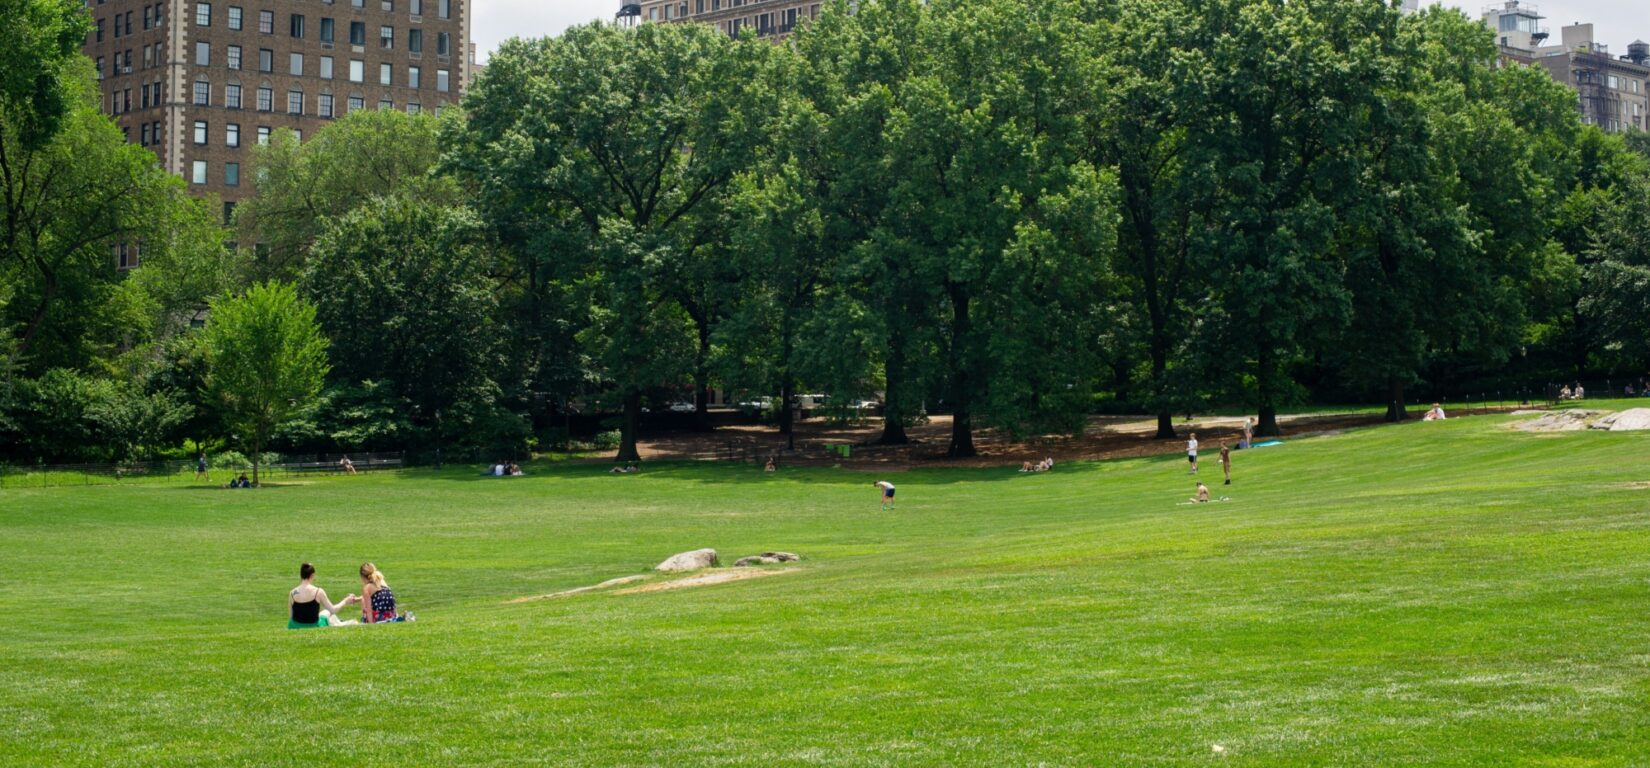 Visitors spread out on the lawn of the East Meadow